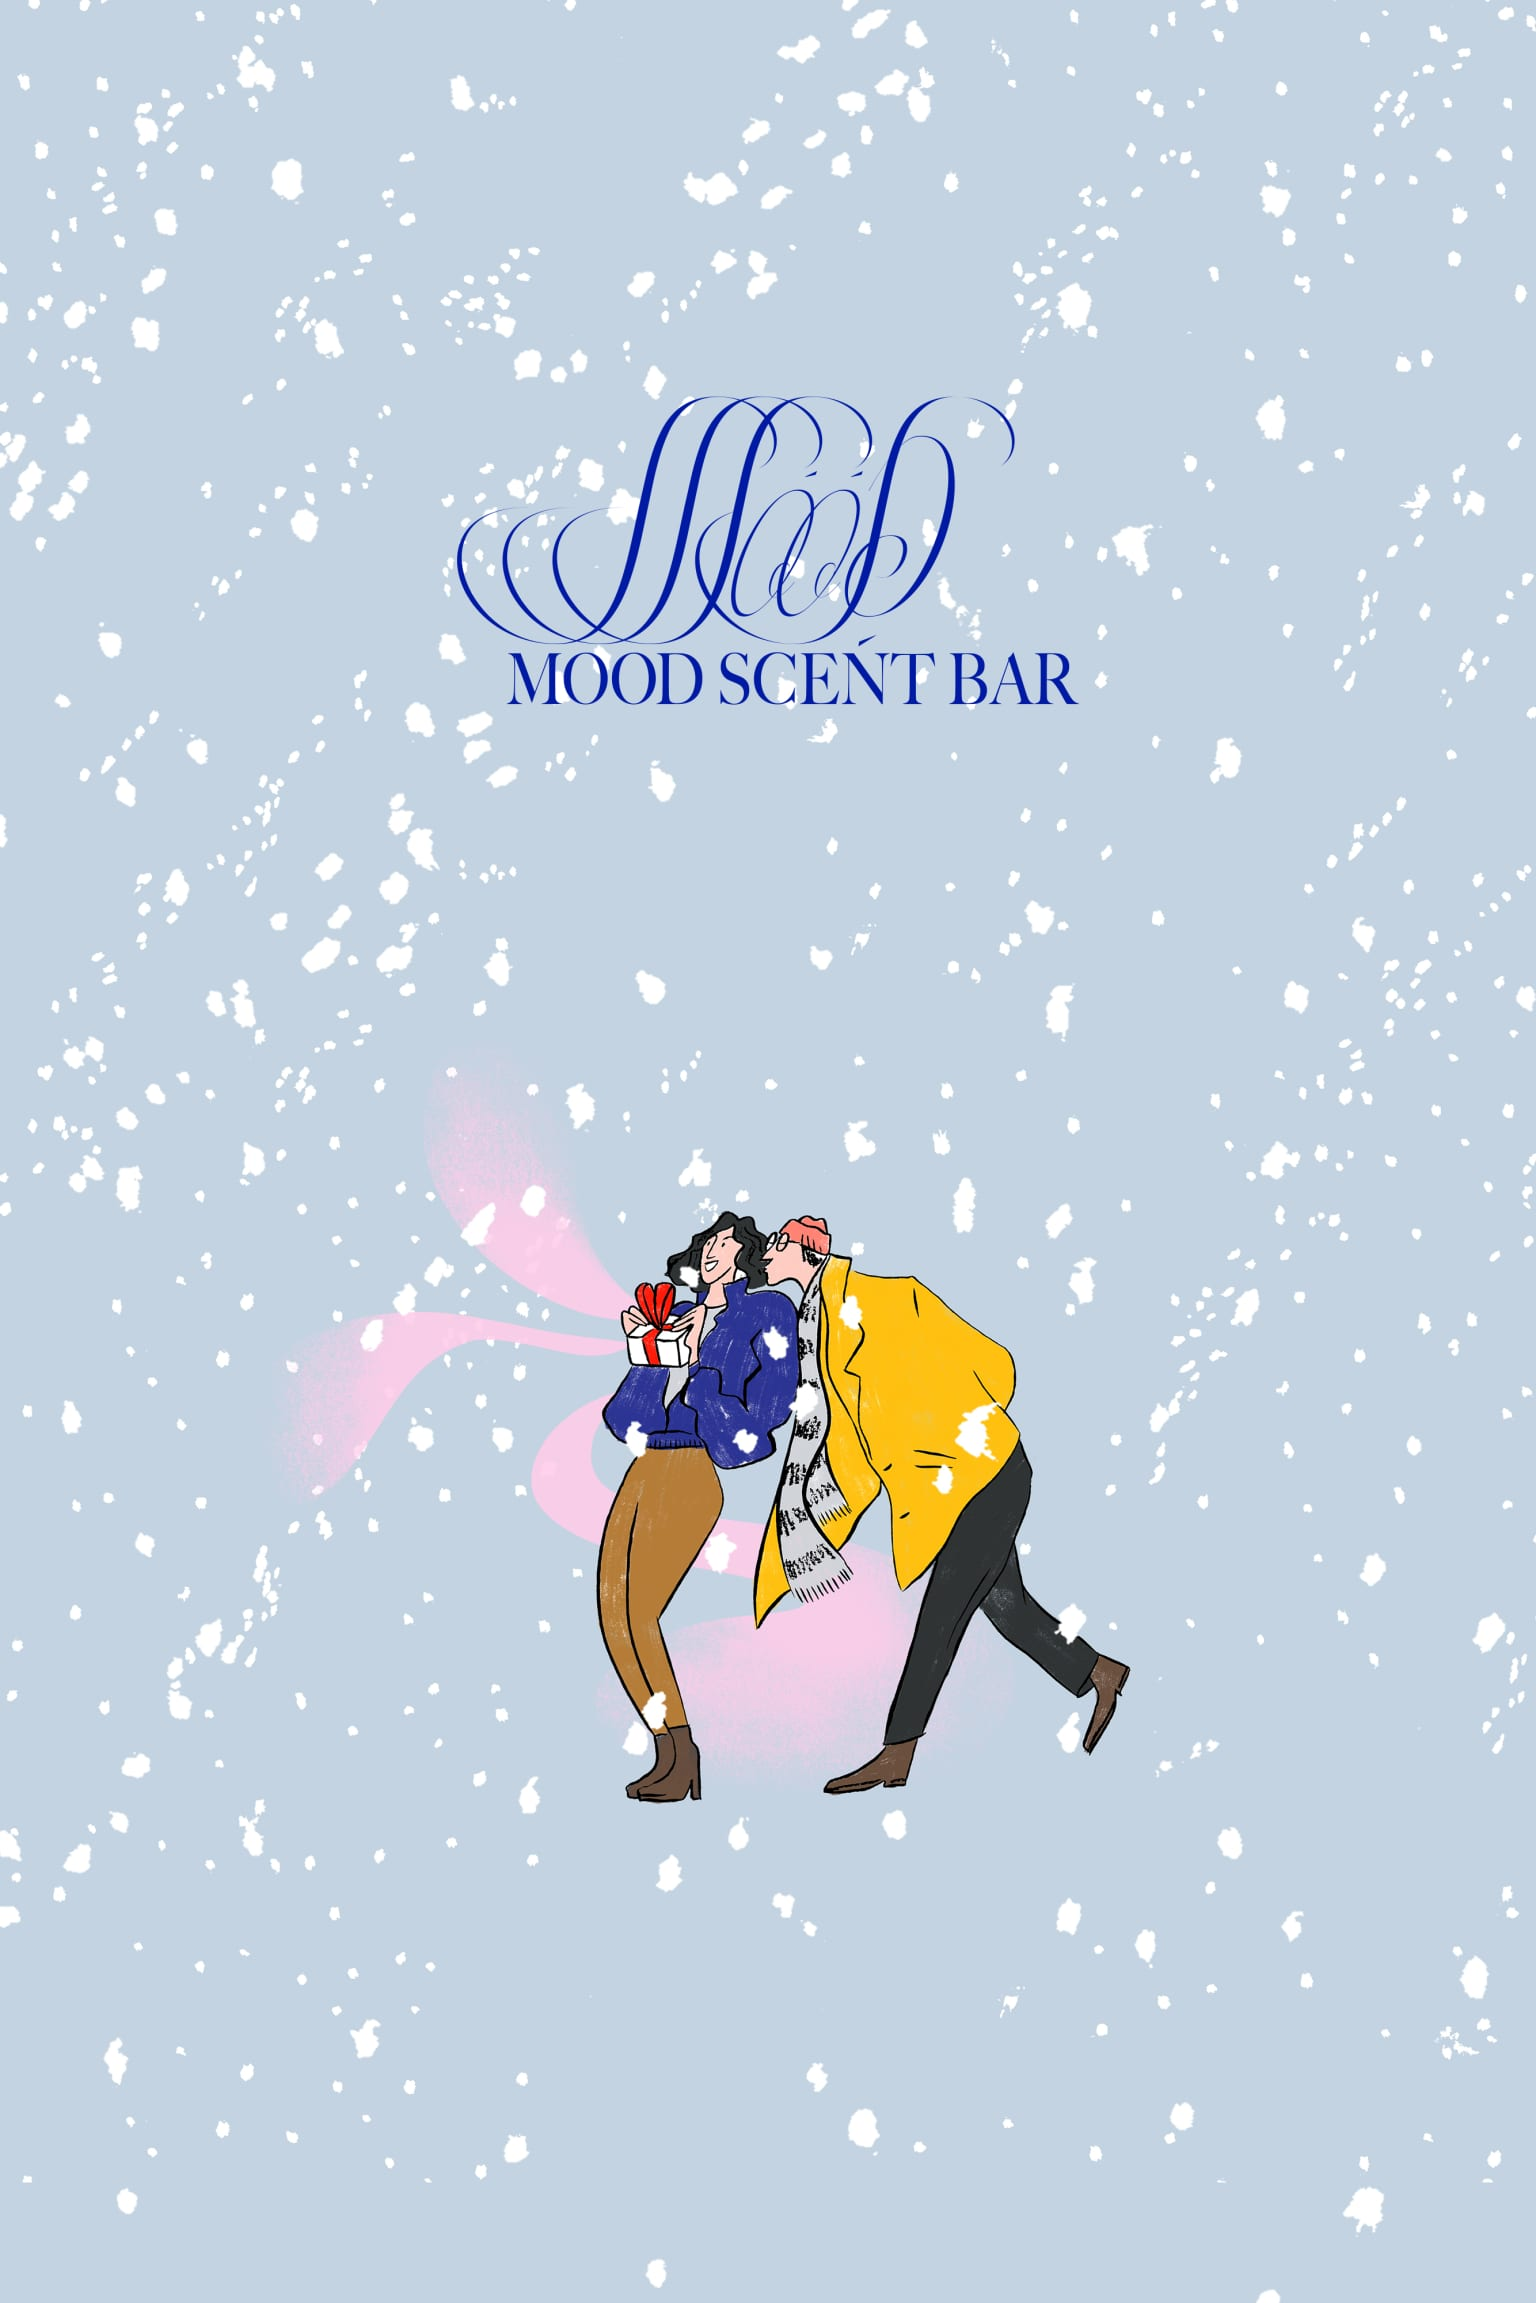 Mood Scent Bar Christmass Illustration